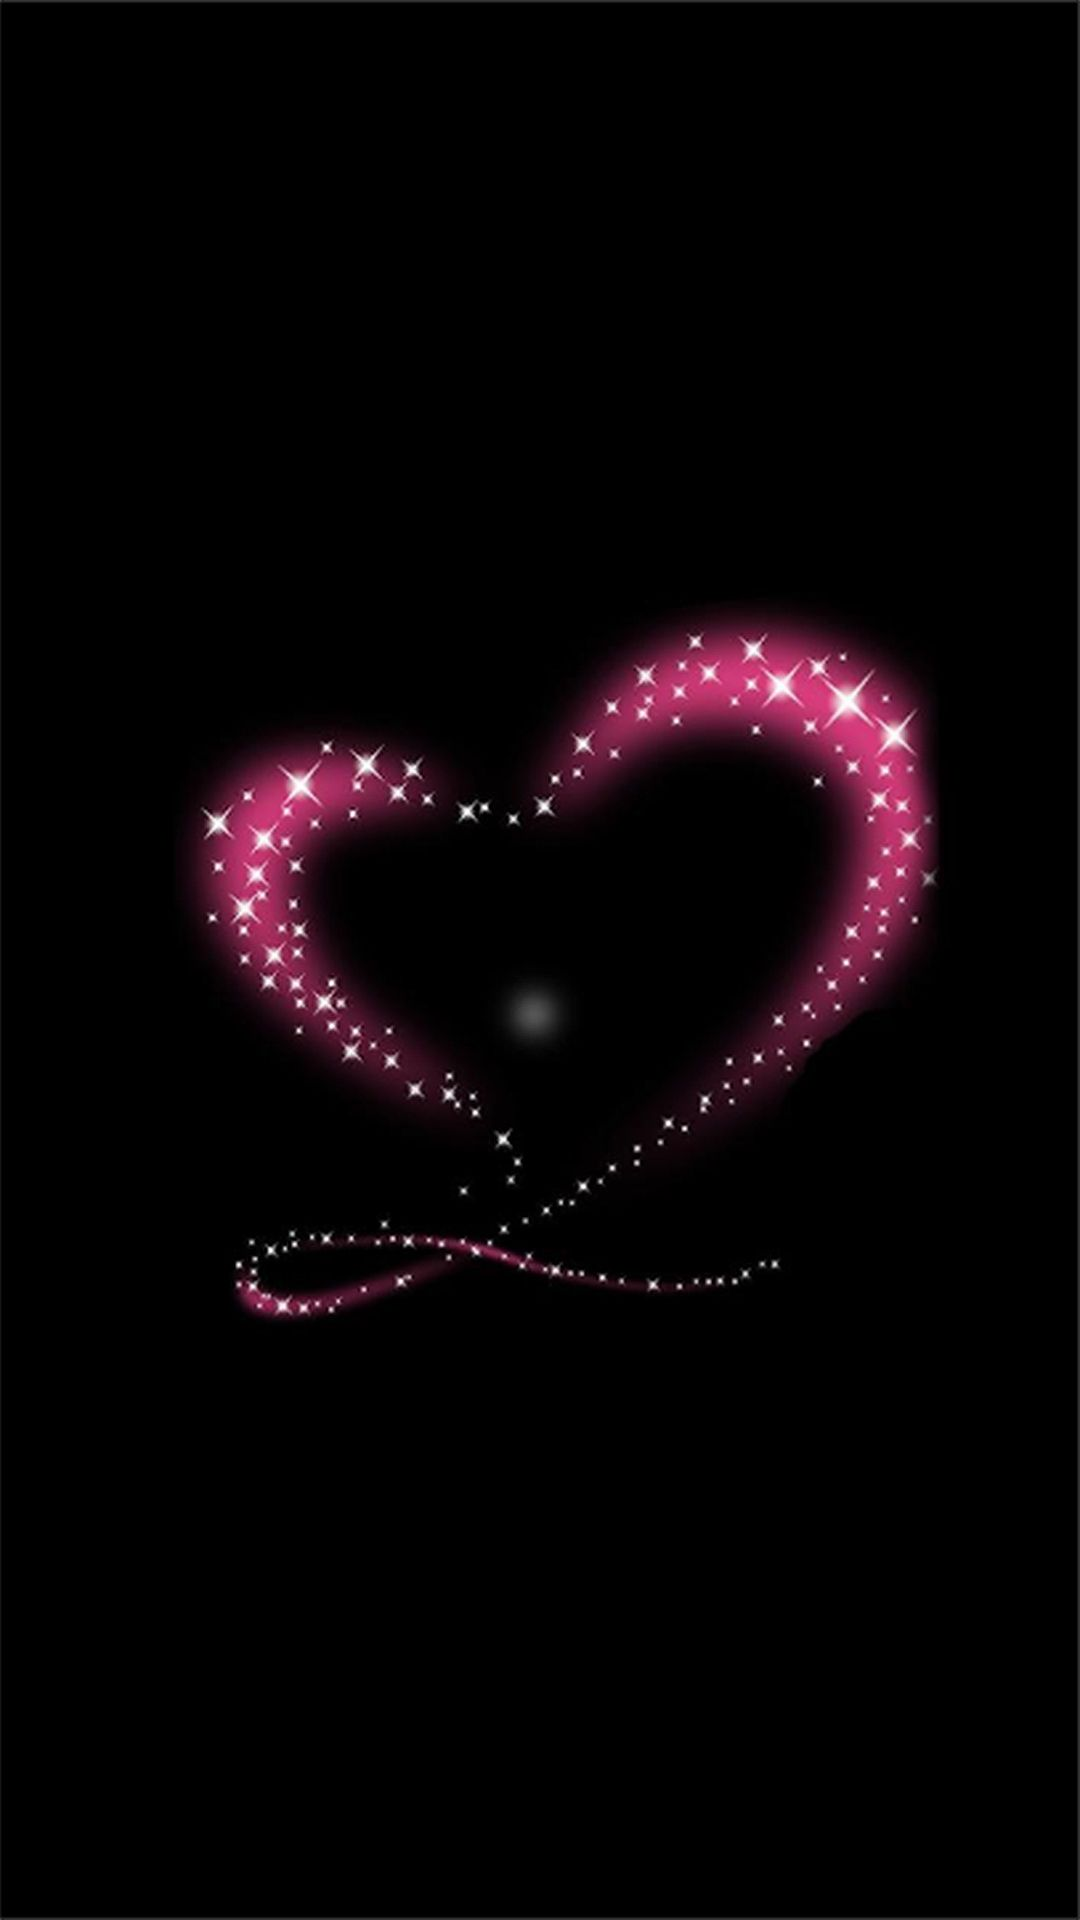 Pin By Leticia Wessels On 01 Hearts Heart Wallpaper Love Heart Images Heart Images